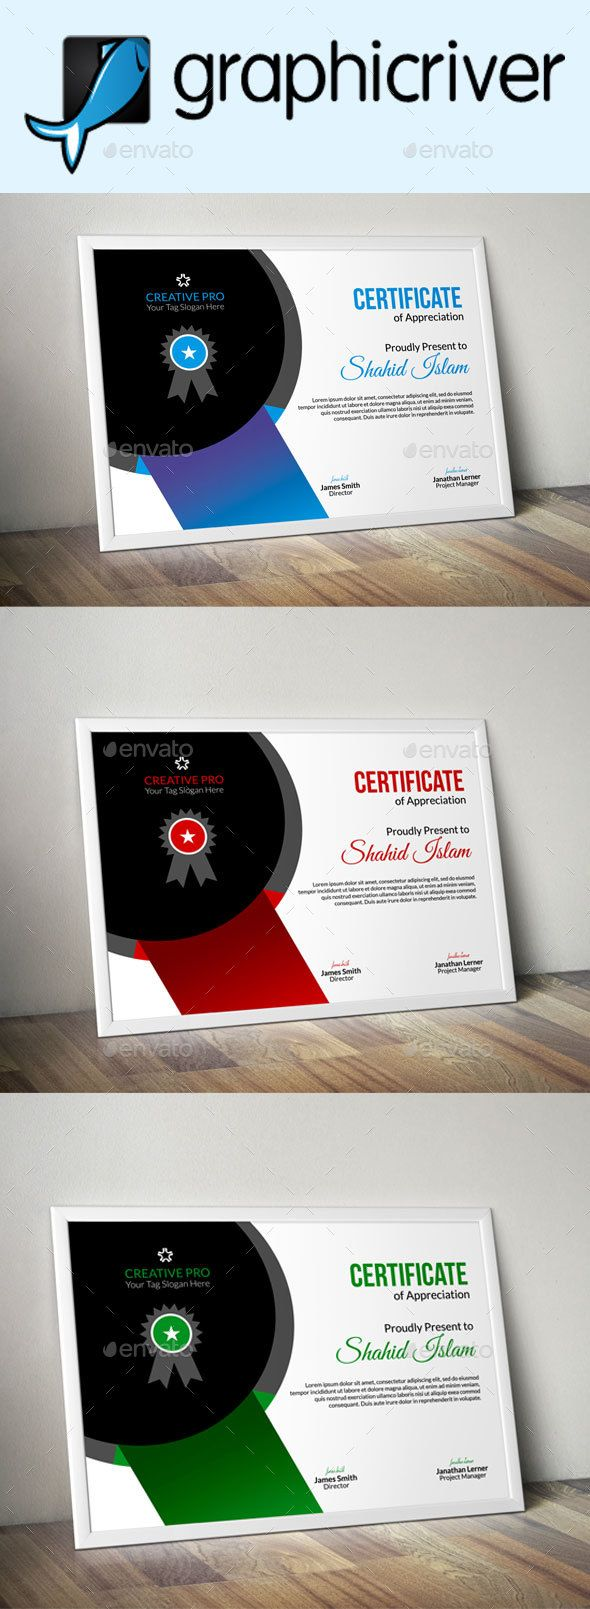 Certificate By: Shahid Email: Shahid.kahn300995@gmail.com Thanks for Parched  Easy to Edit CMYK Color 300 DPI High Resolution A4 Size (+ bleed setting) Print Ready Format Free Fonts FILES INCLUDES:  Ai & EPS files (Horizontal & Vertical Version)  Print ready  Text editable  4 Different colour